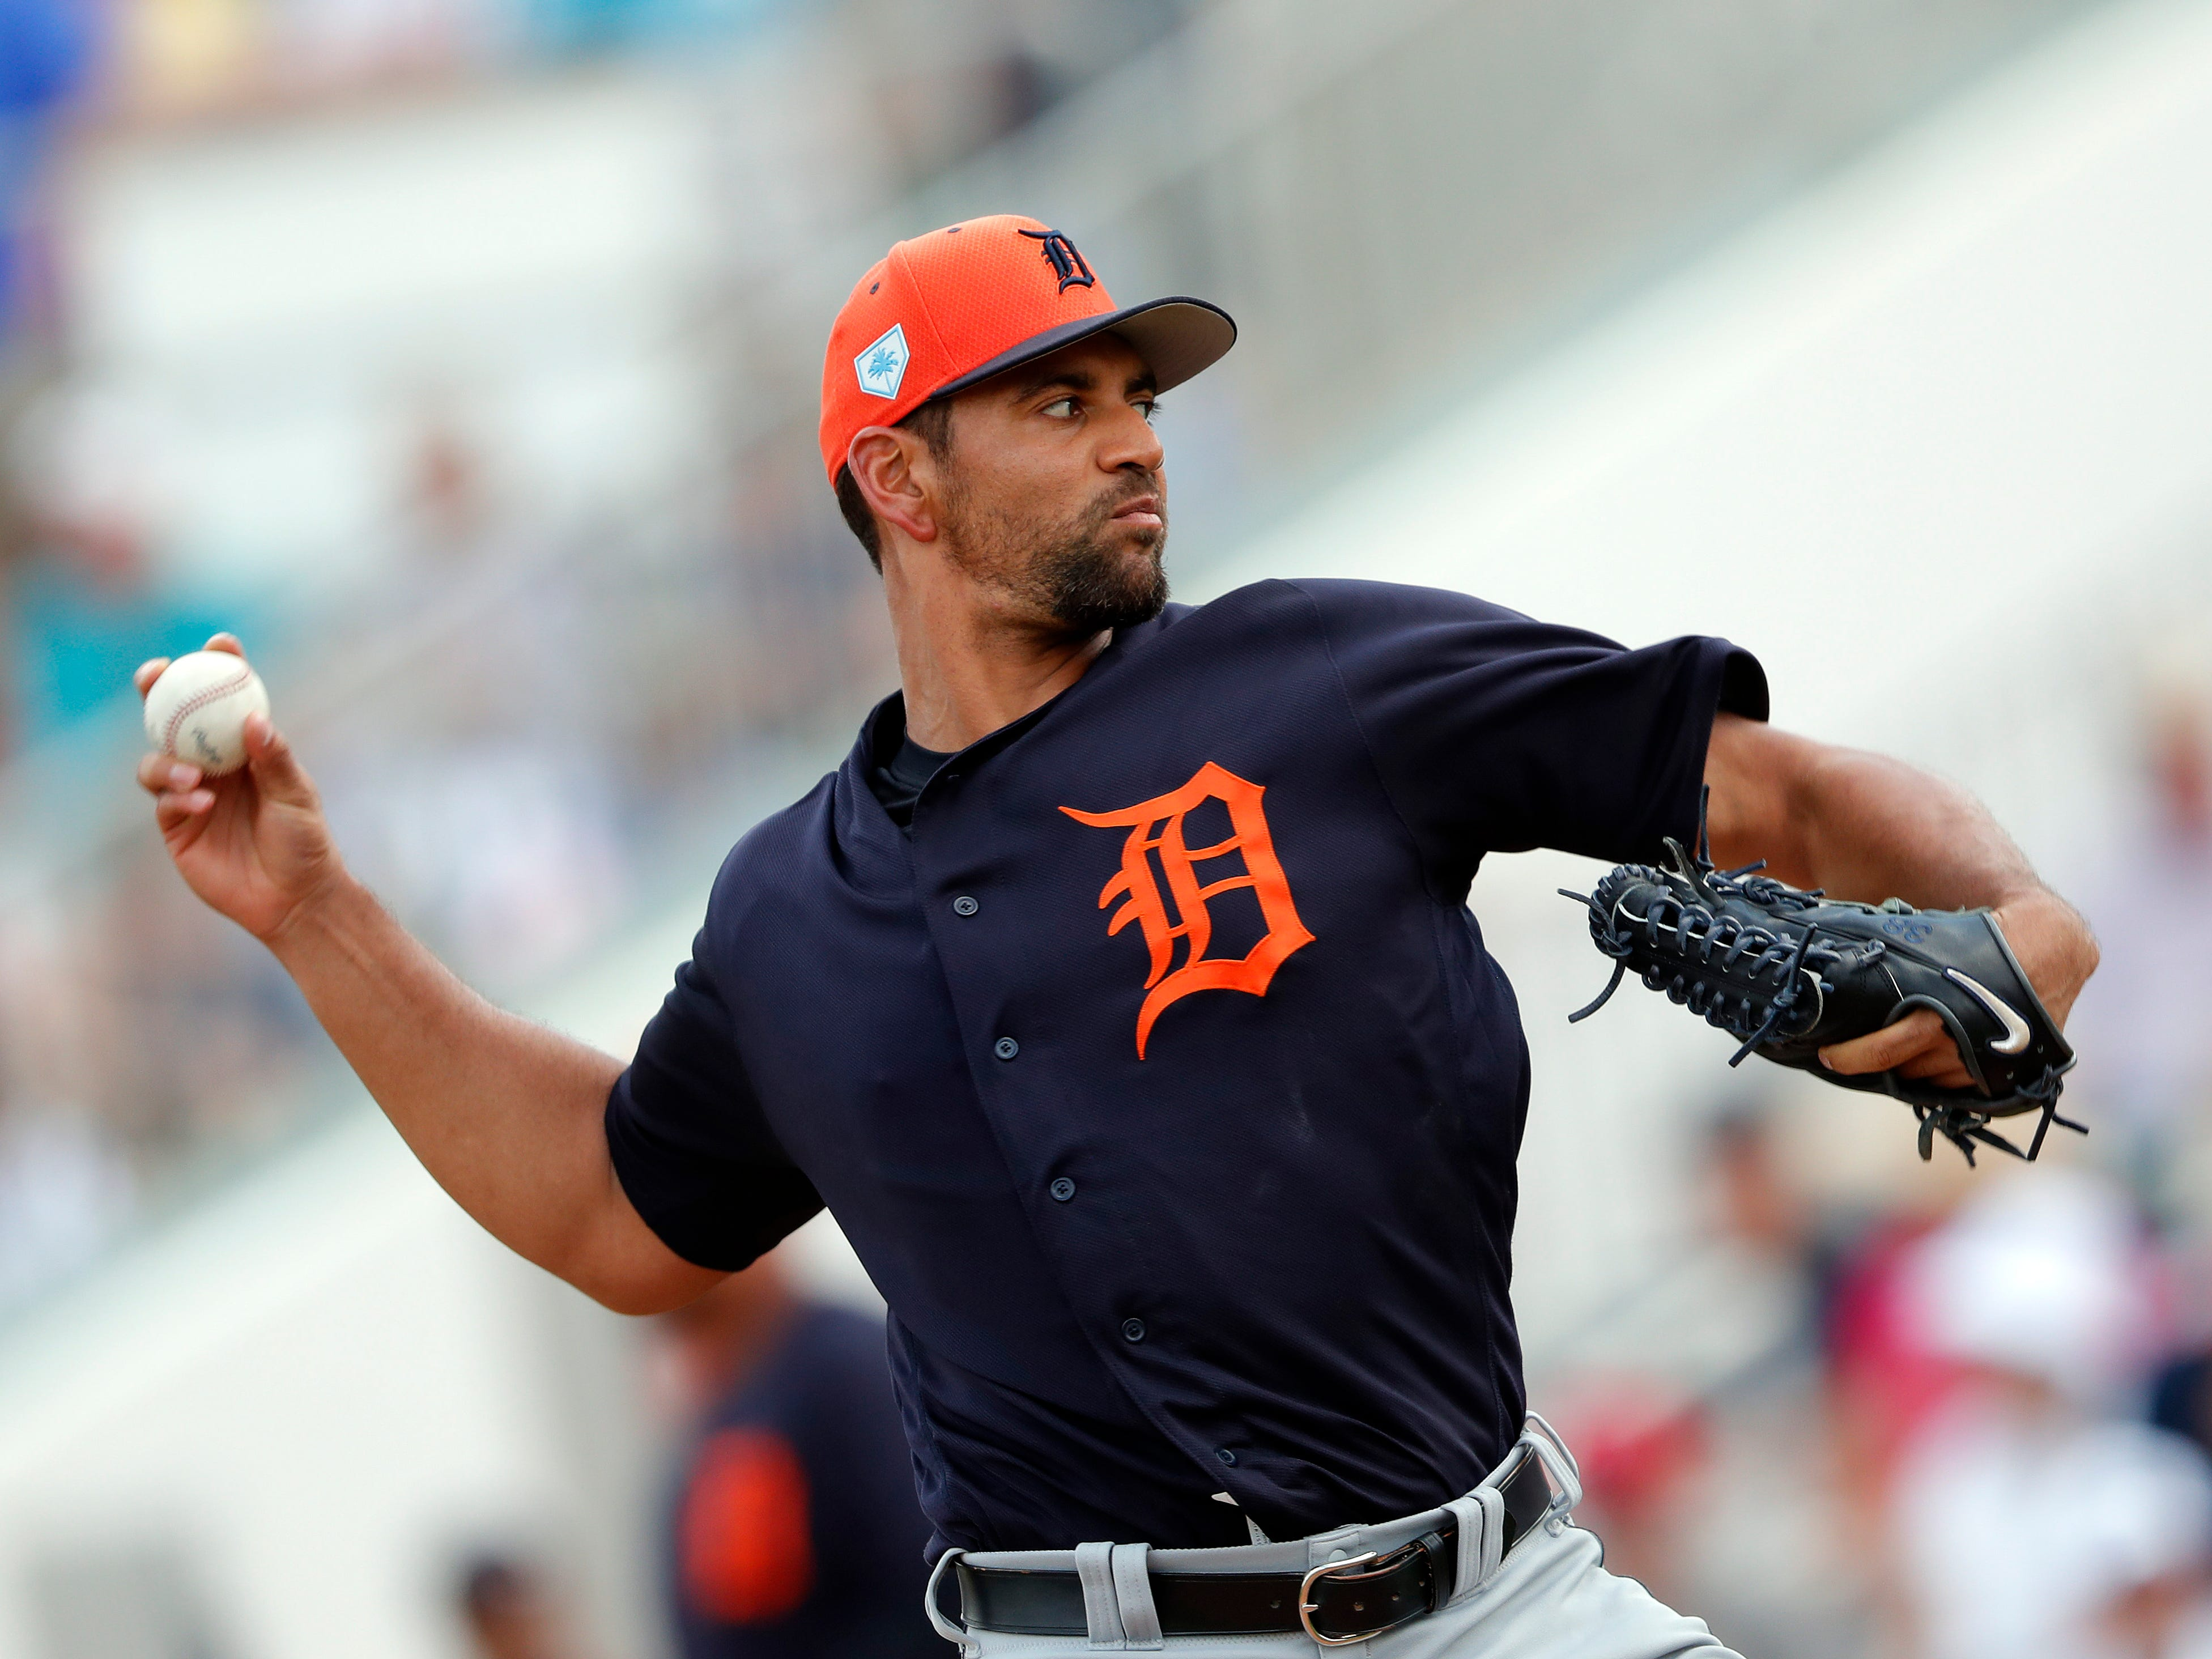 Detroit Tigers starting pitcher Tyson Ross works against the Minnesota Twins in the second inning of a 3-0 Detroit victory during a spring training baseball game Monday, March 11, 2019, in Fort Myers, Fla.